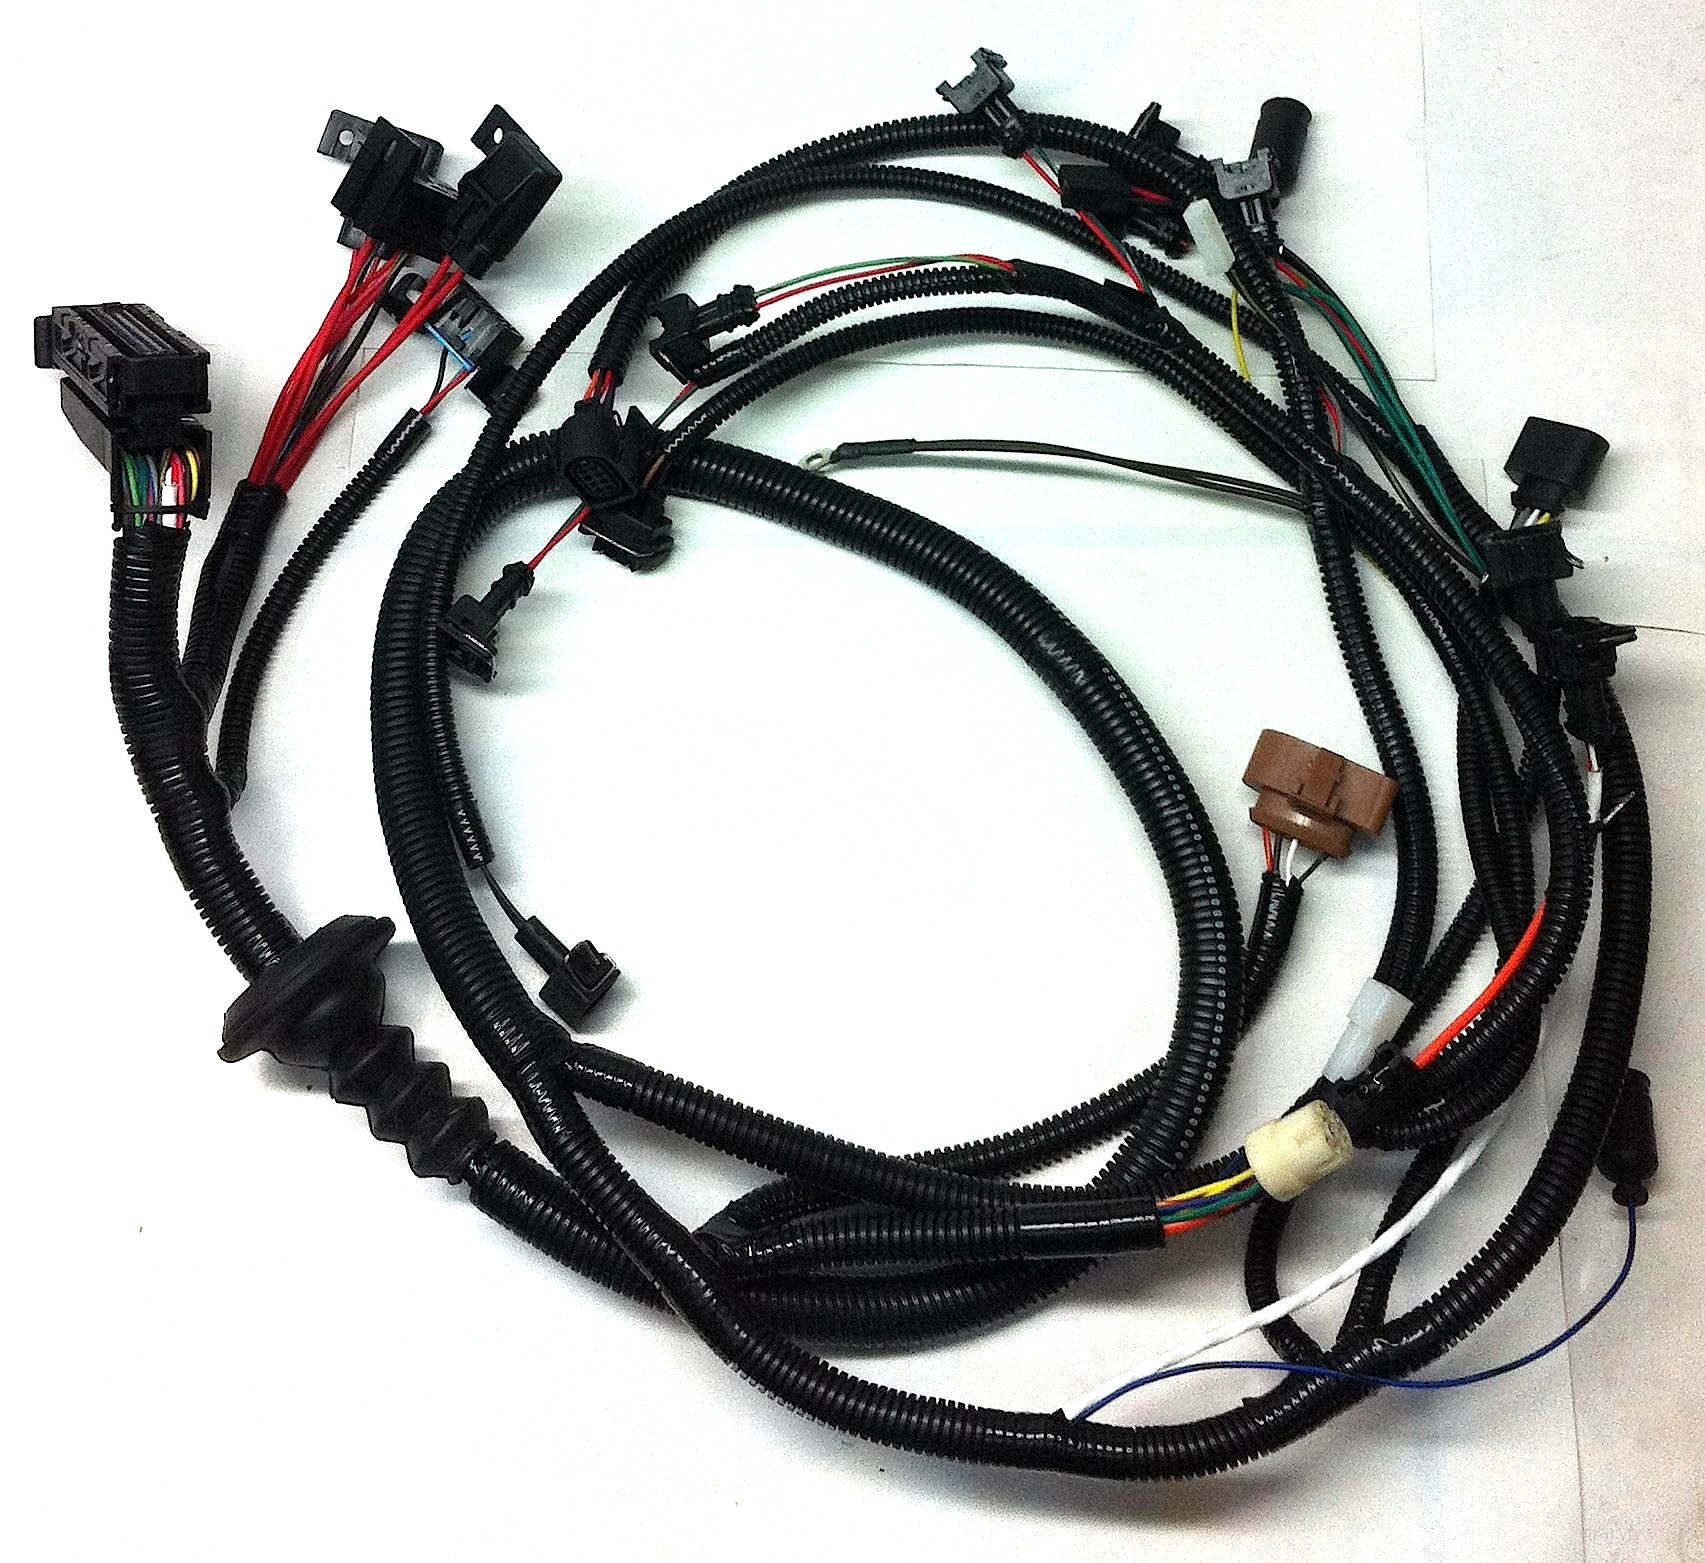 Wiring_Harness_2LR 2lr tiico conversion wiring harness foreign auto & supply, inc wire harness supplies at metegol.co